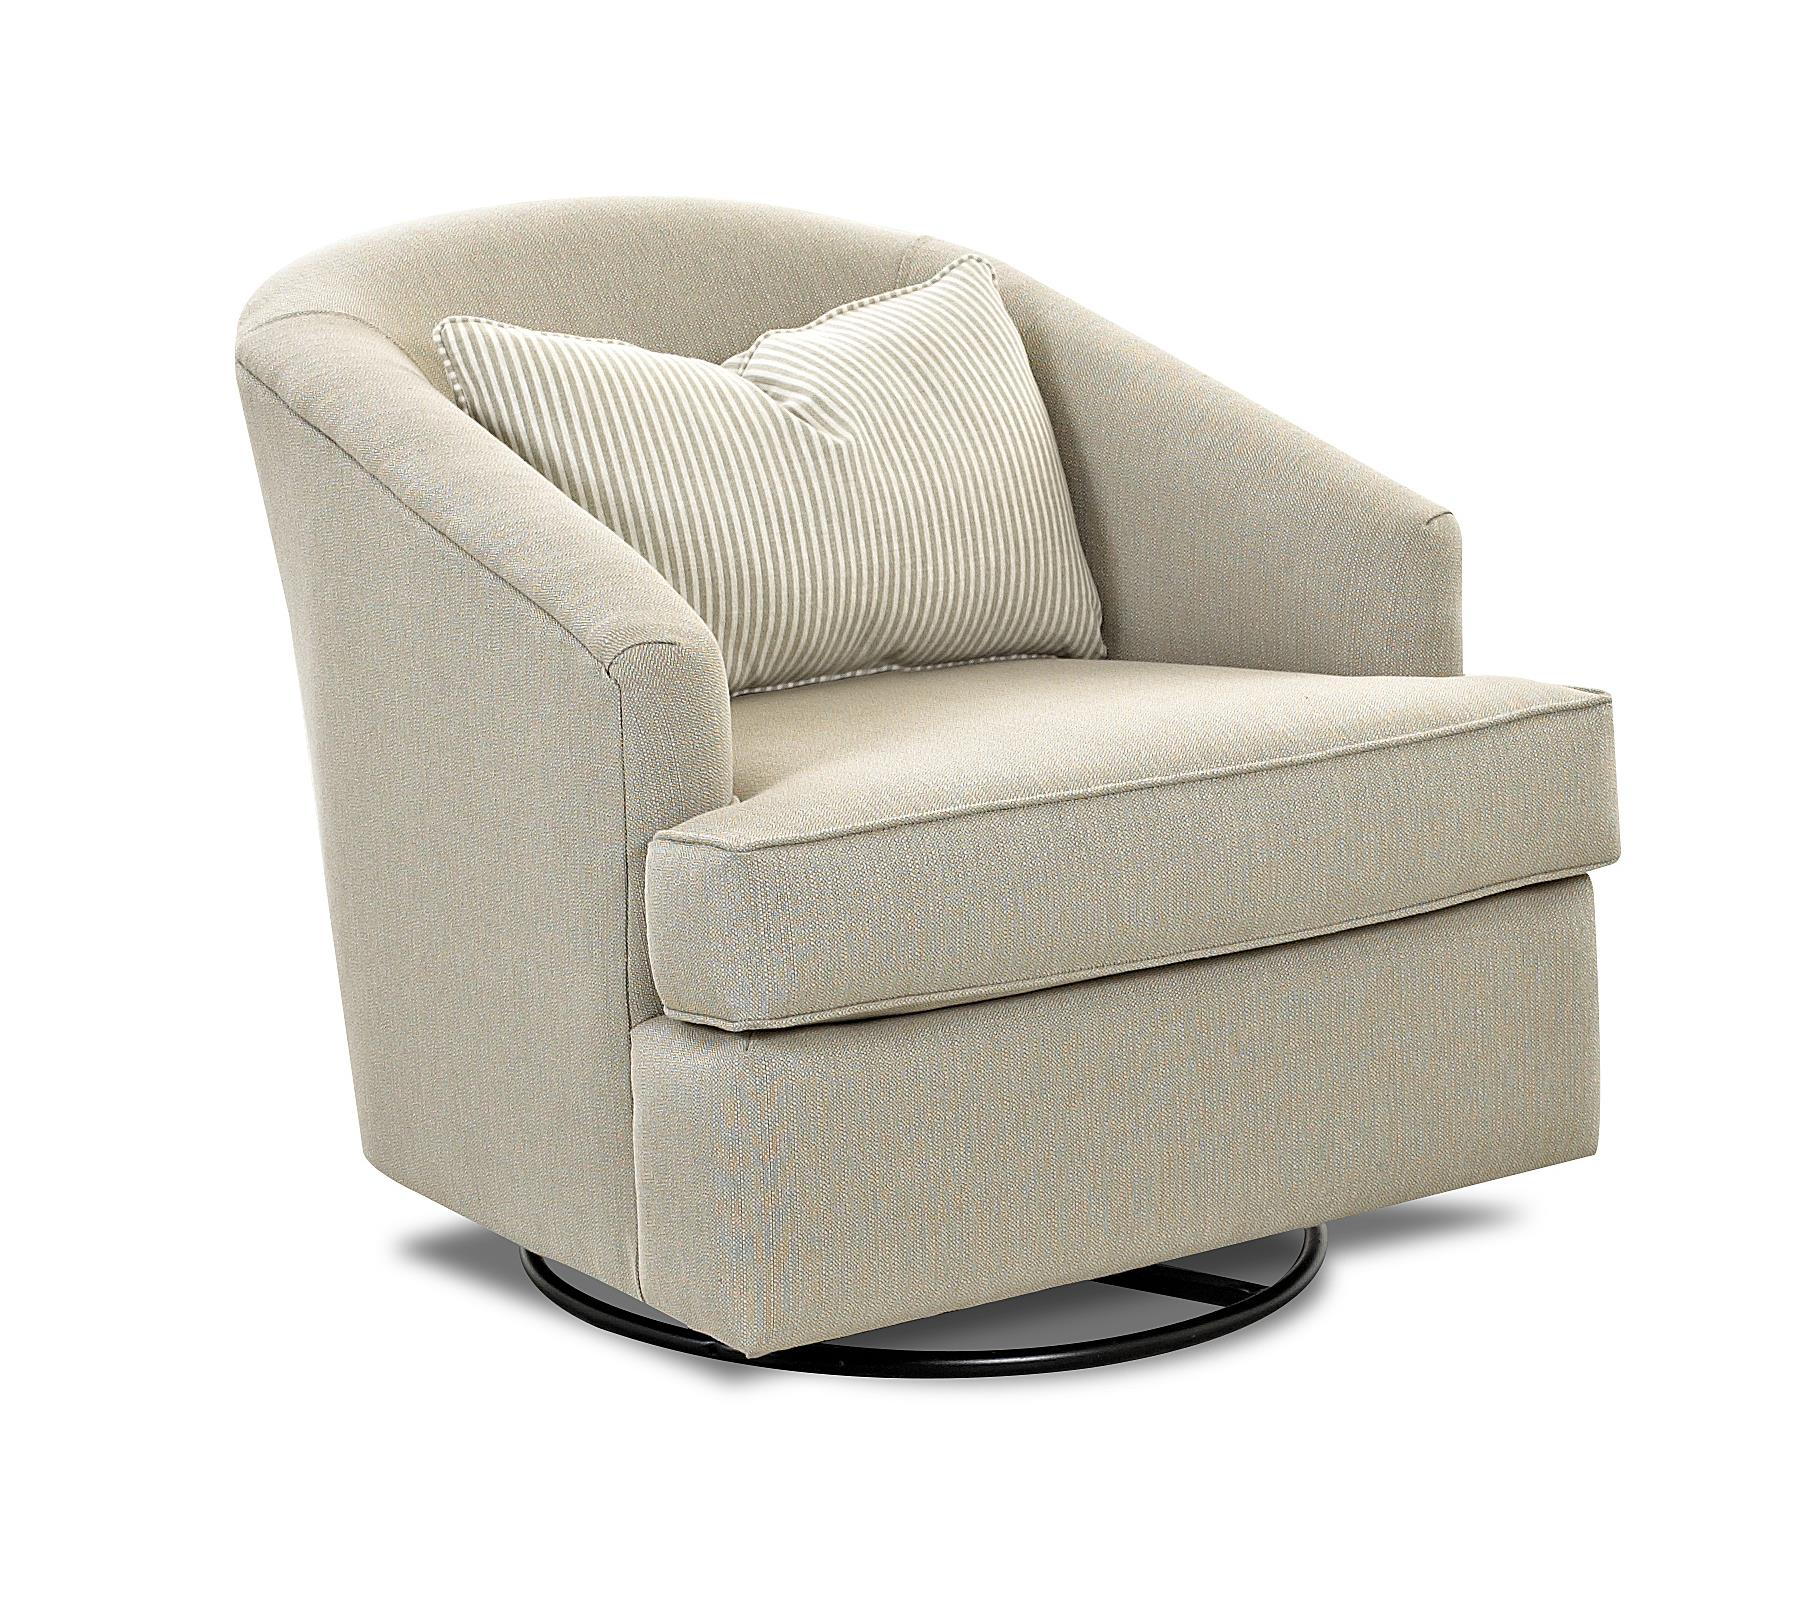 swivel chair value city how much do covers cost to rent klaussner chairs and accents devon glide with